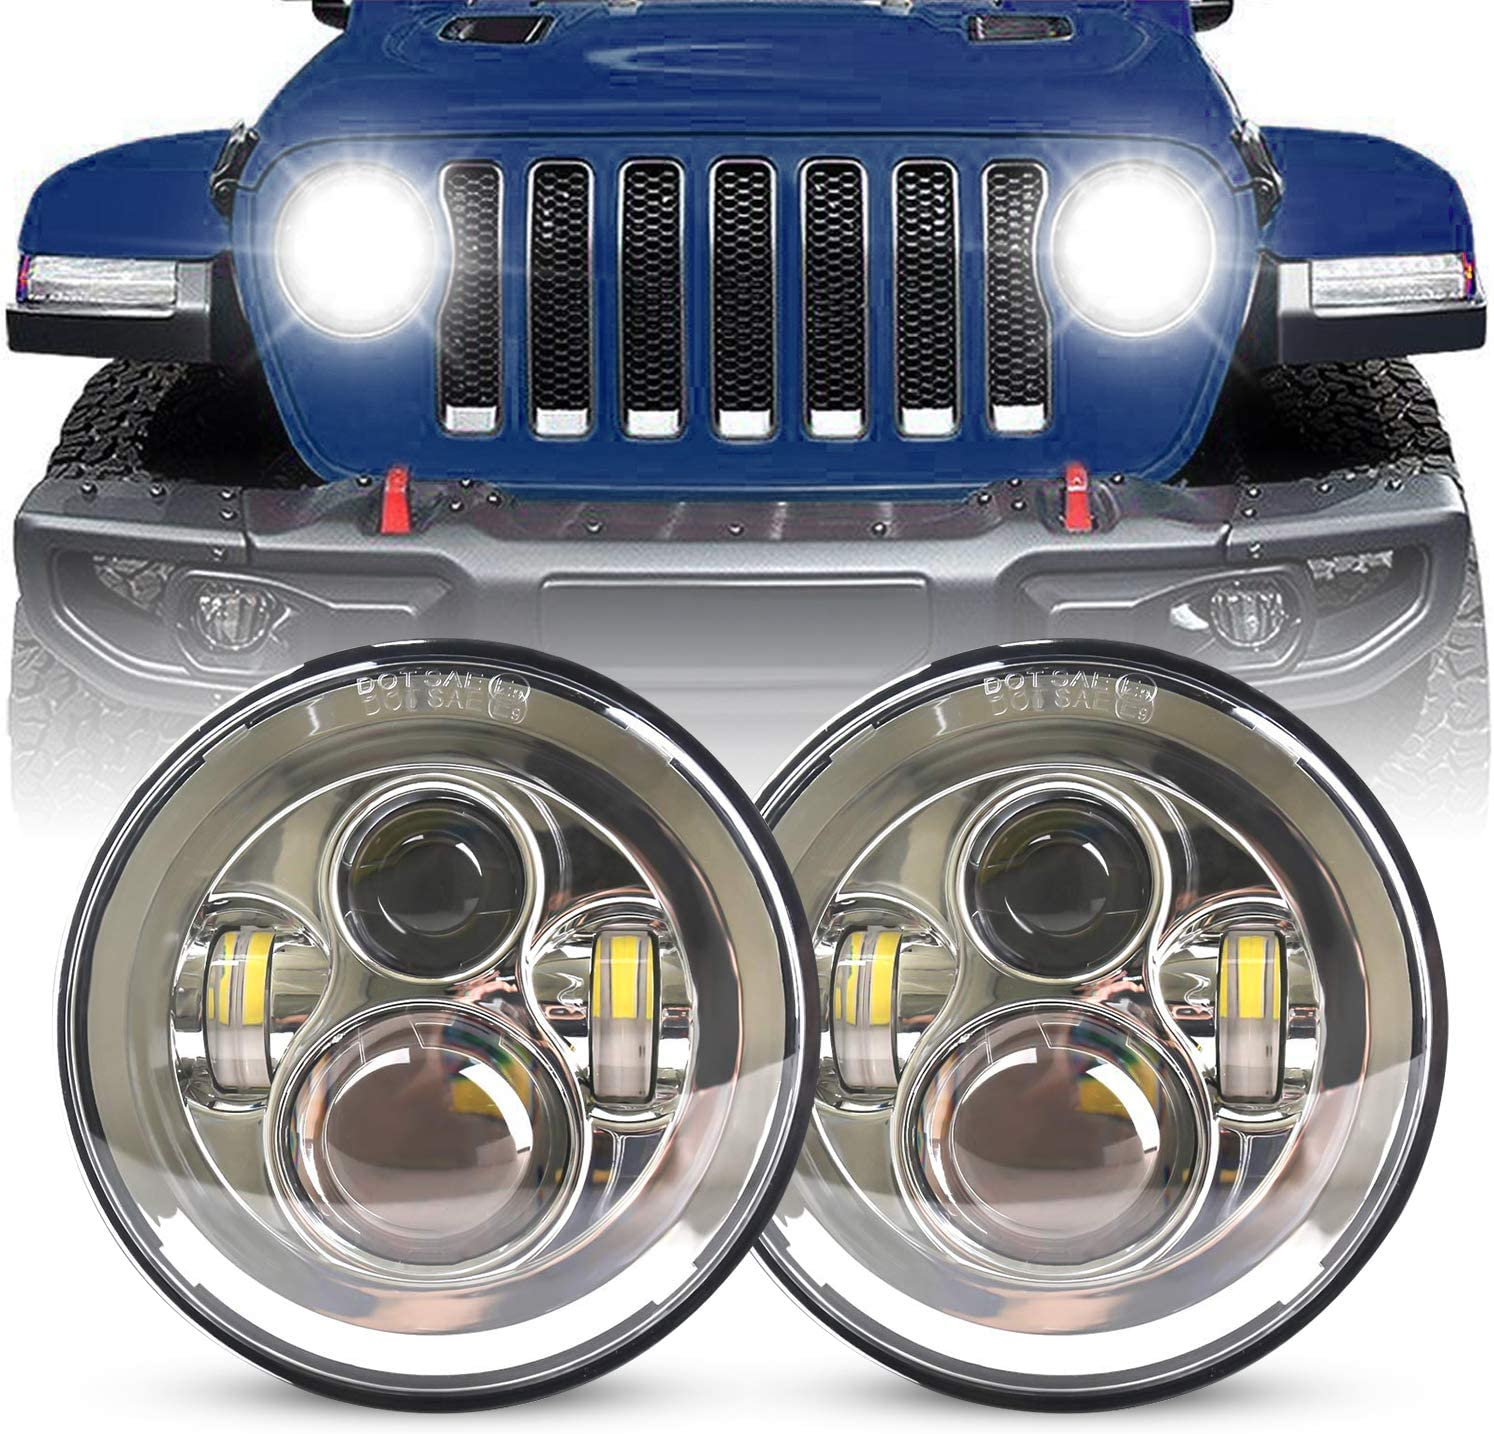 YEEGO 7 inch Round CREE LED Headlight High Low Beam for 1997-2018 JK TJ LJ CJ Rubicon Sahara Willys Hummber H1 H2 DOT Approved Silver Pair